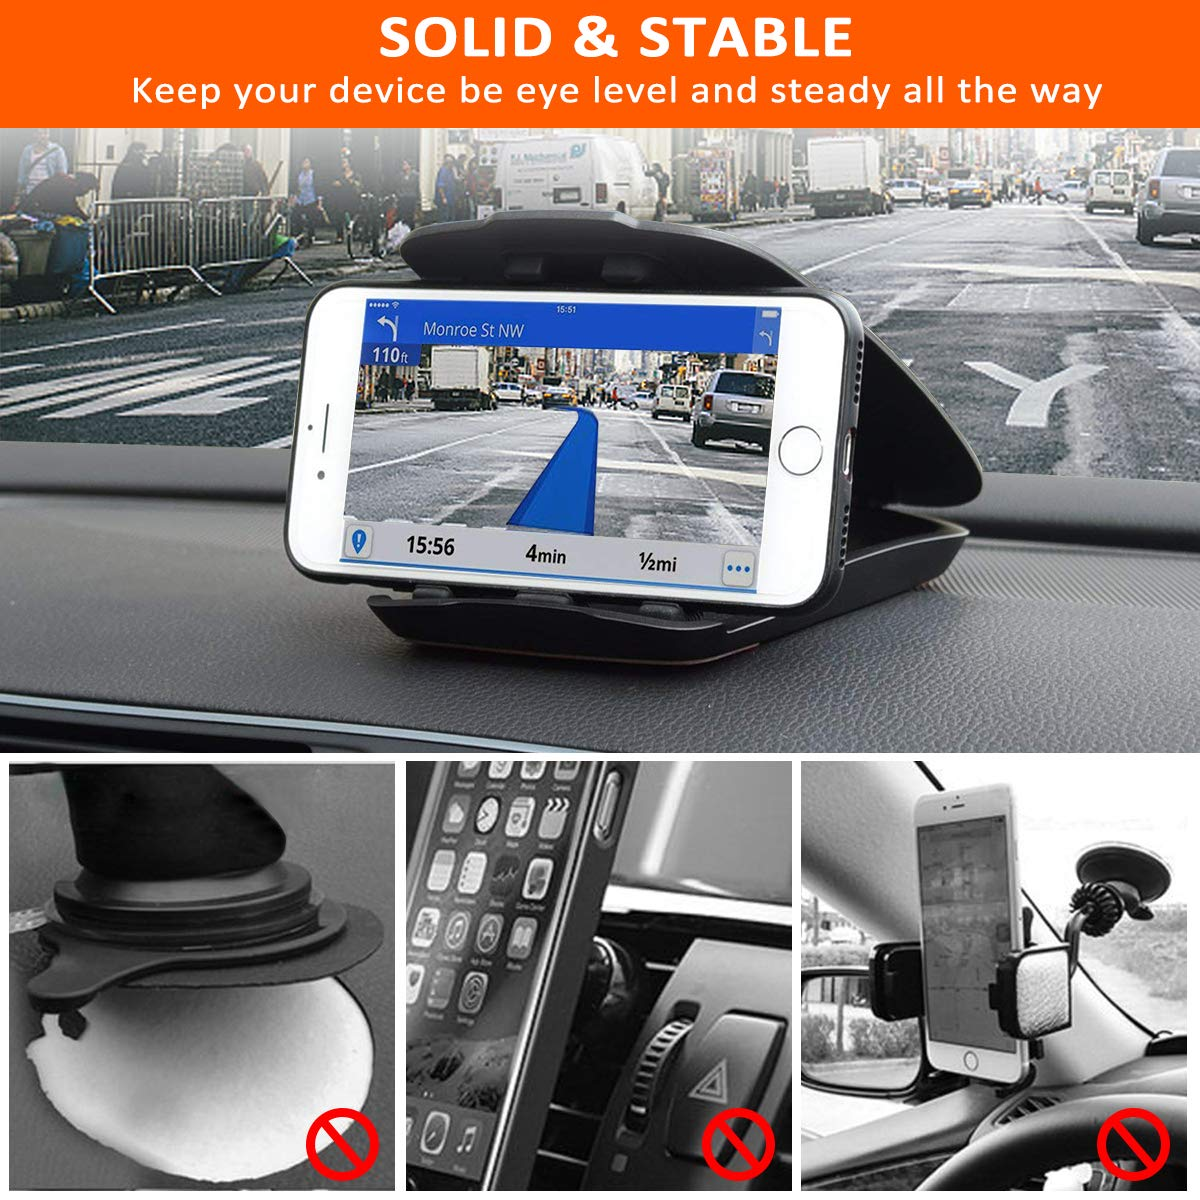 Amazon.com: Phone Holder for Car, Matone Car Mount Dashboard Cell Phone Holder [Easy Opening & Neat Folding], Compatible with iPhone X/XS Max/XR/8 Plus/7 ...